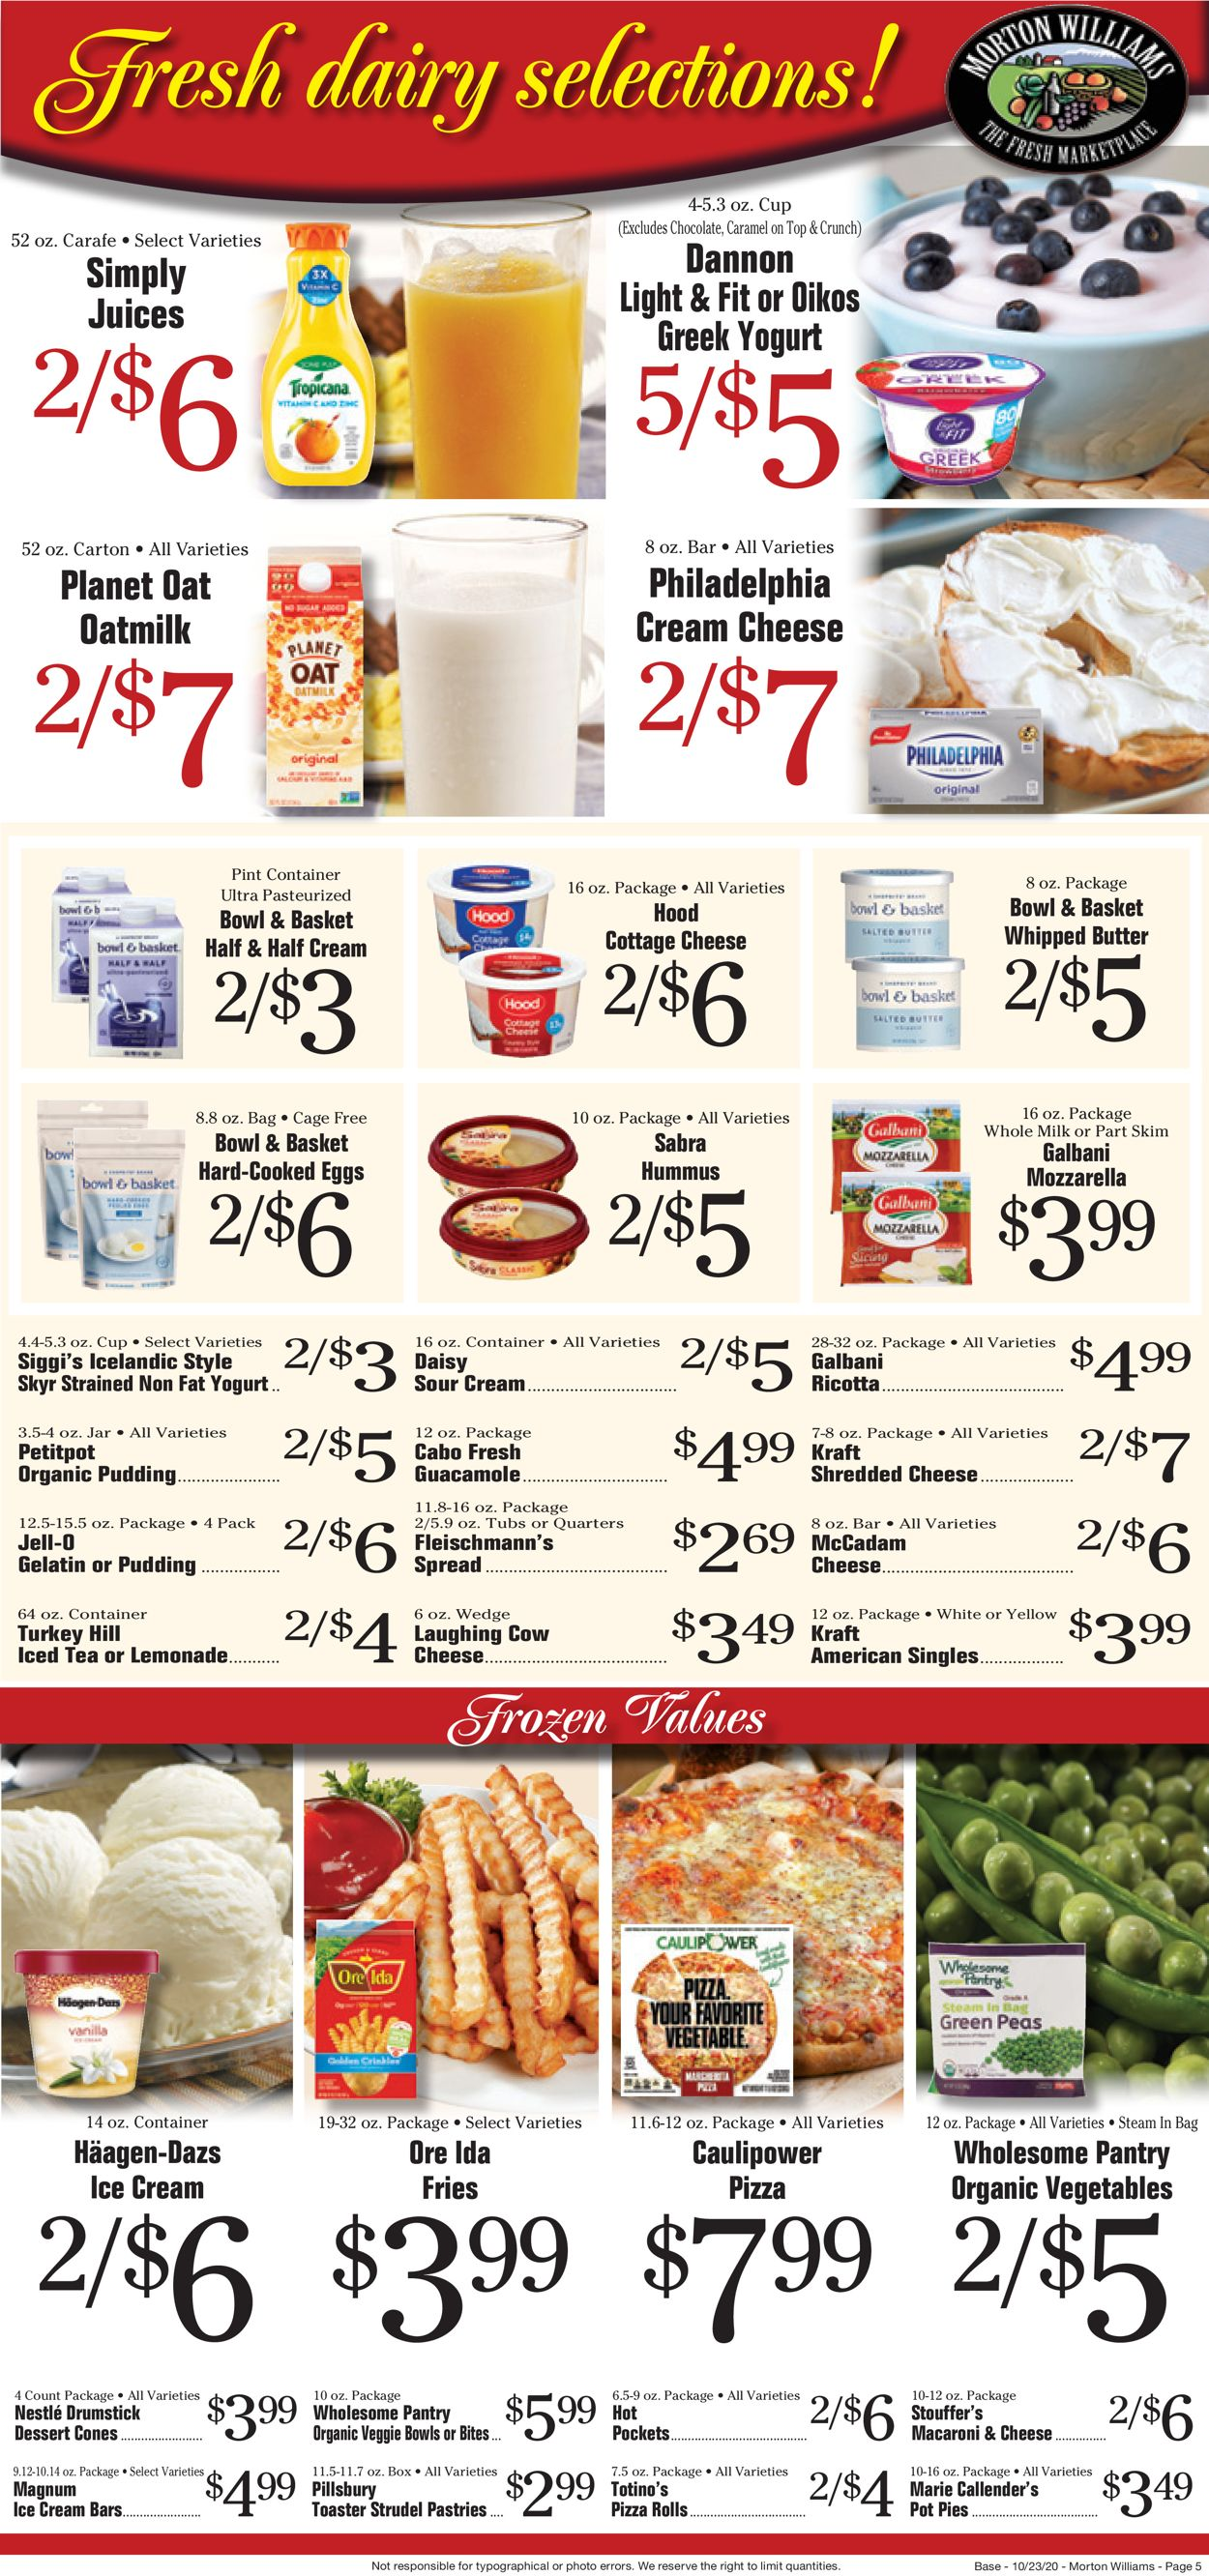 morton williams current weekly ad 10/23  10/29/2020 5  frequentads